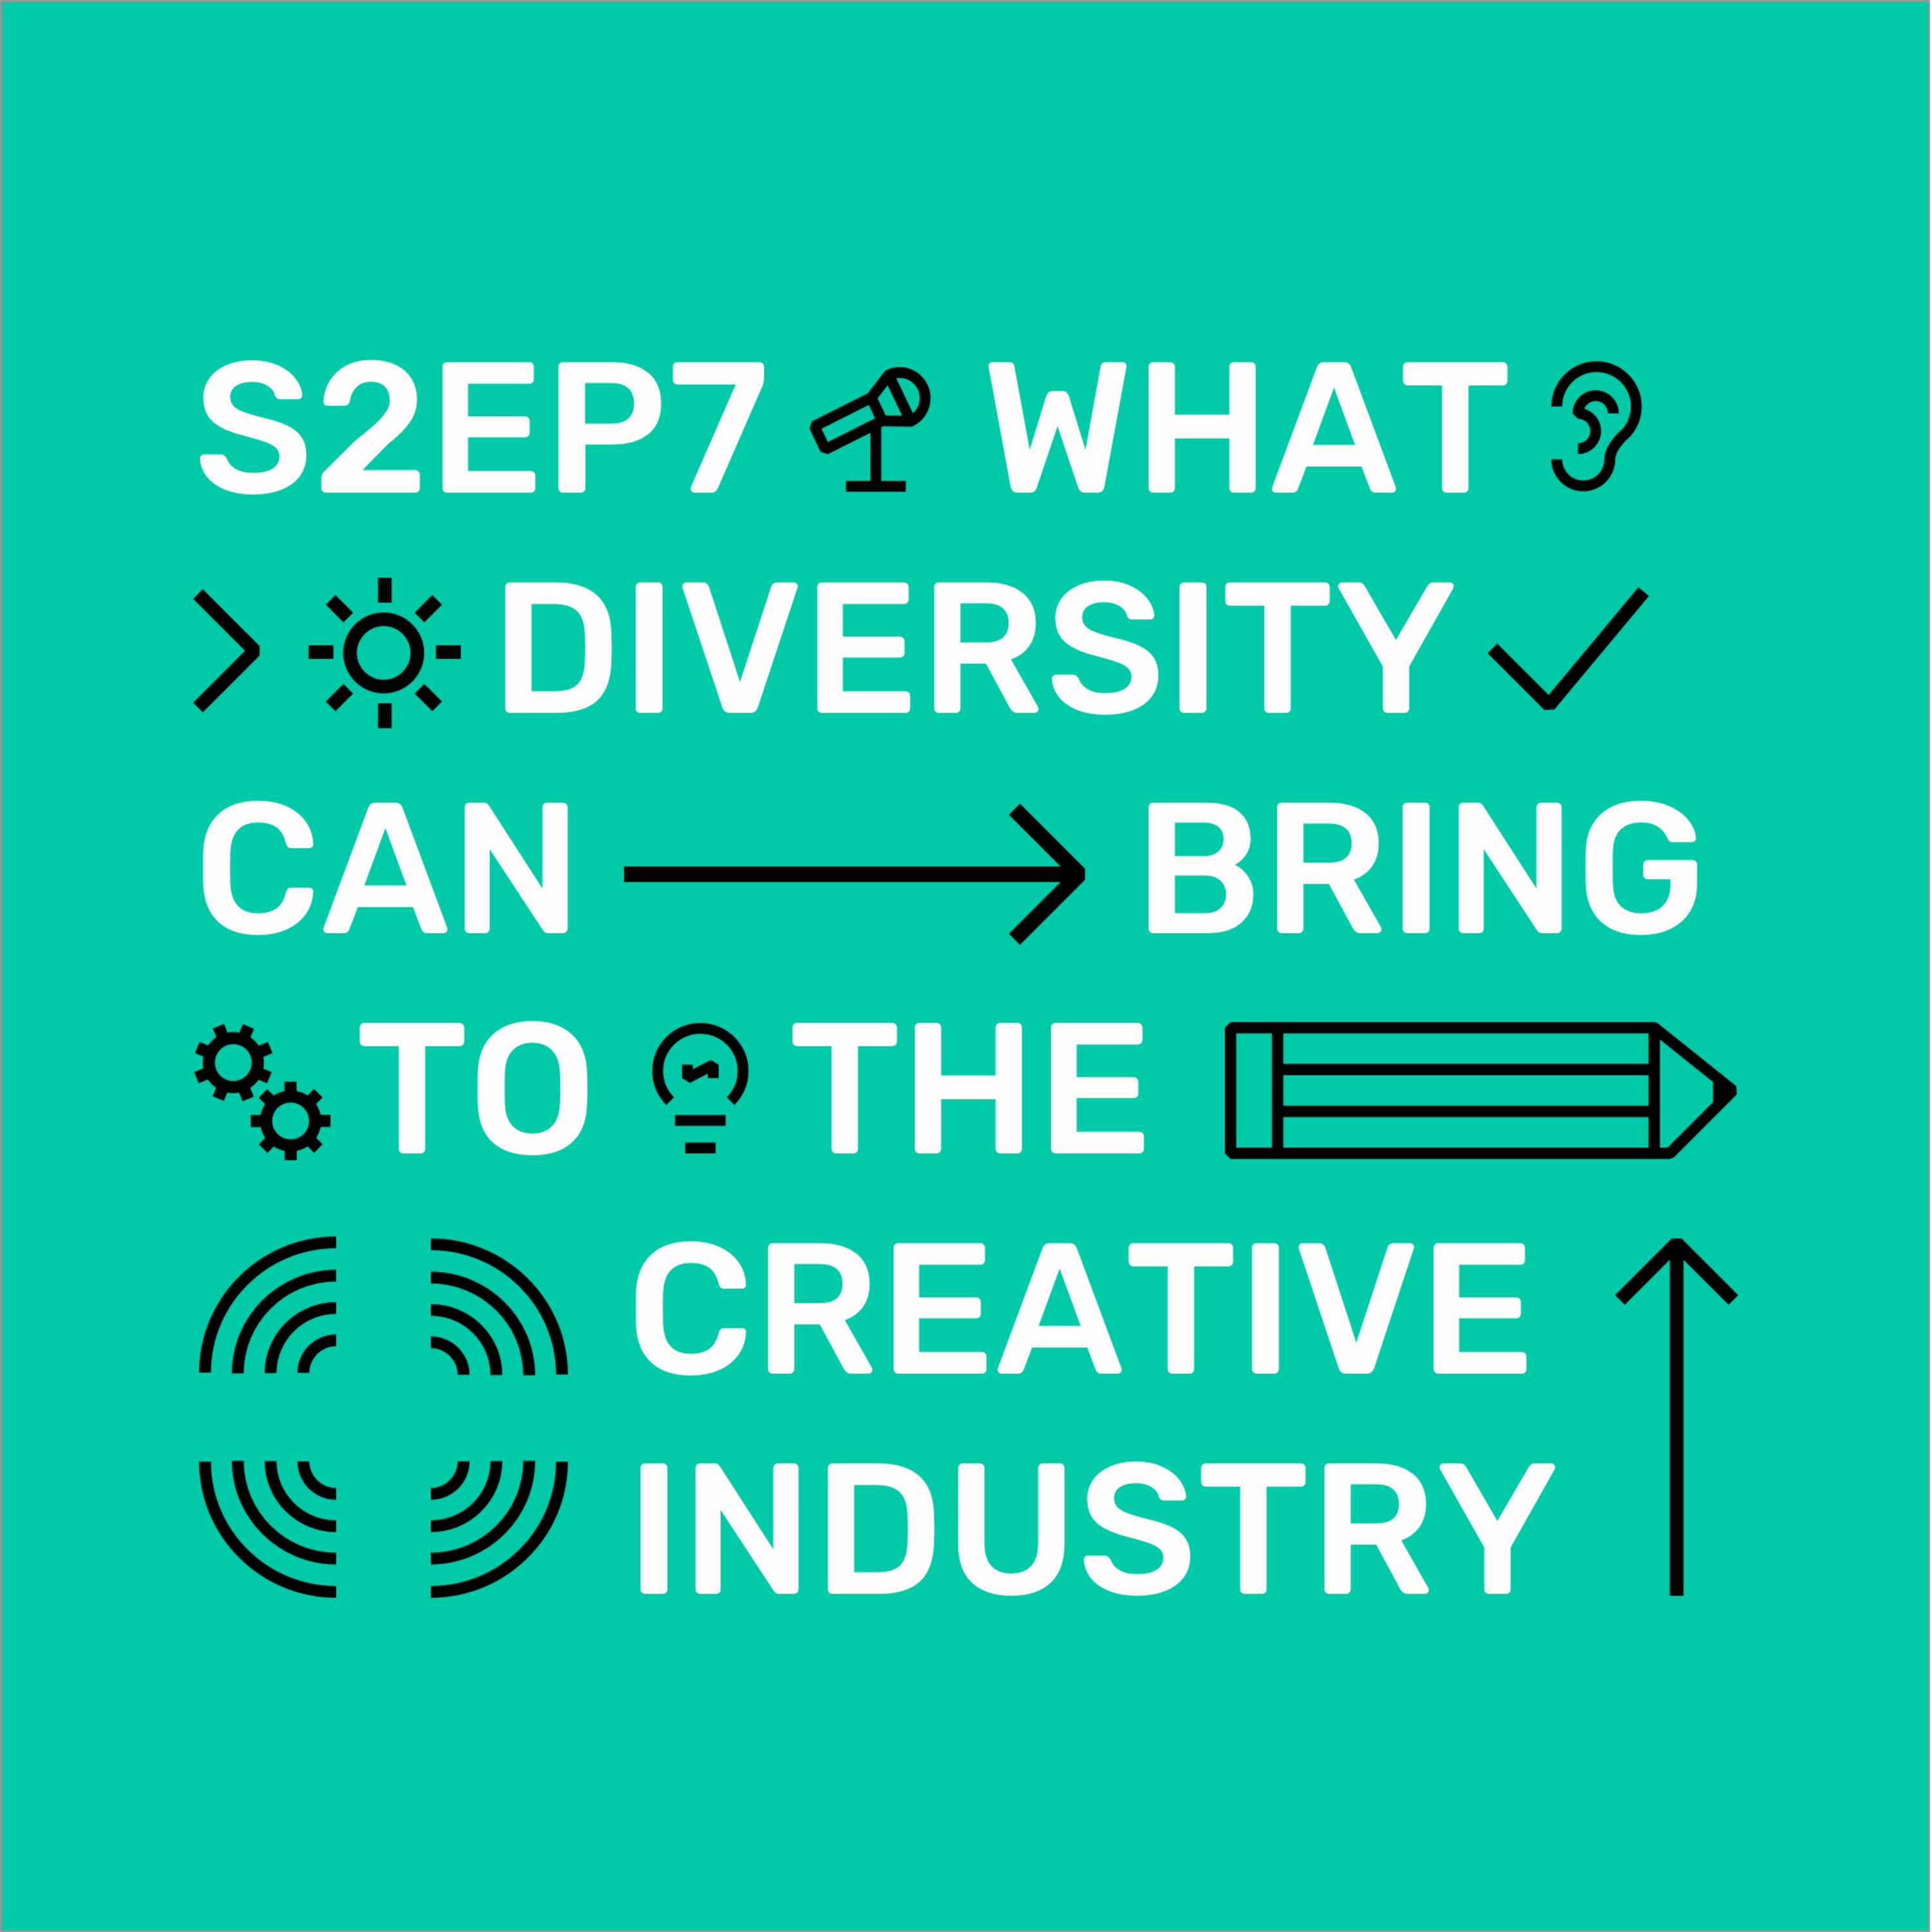 S2Ep7 What diversity can bring to the creative industry